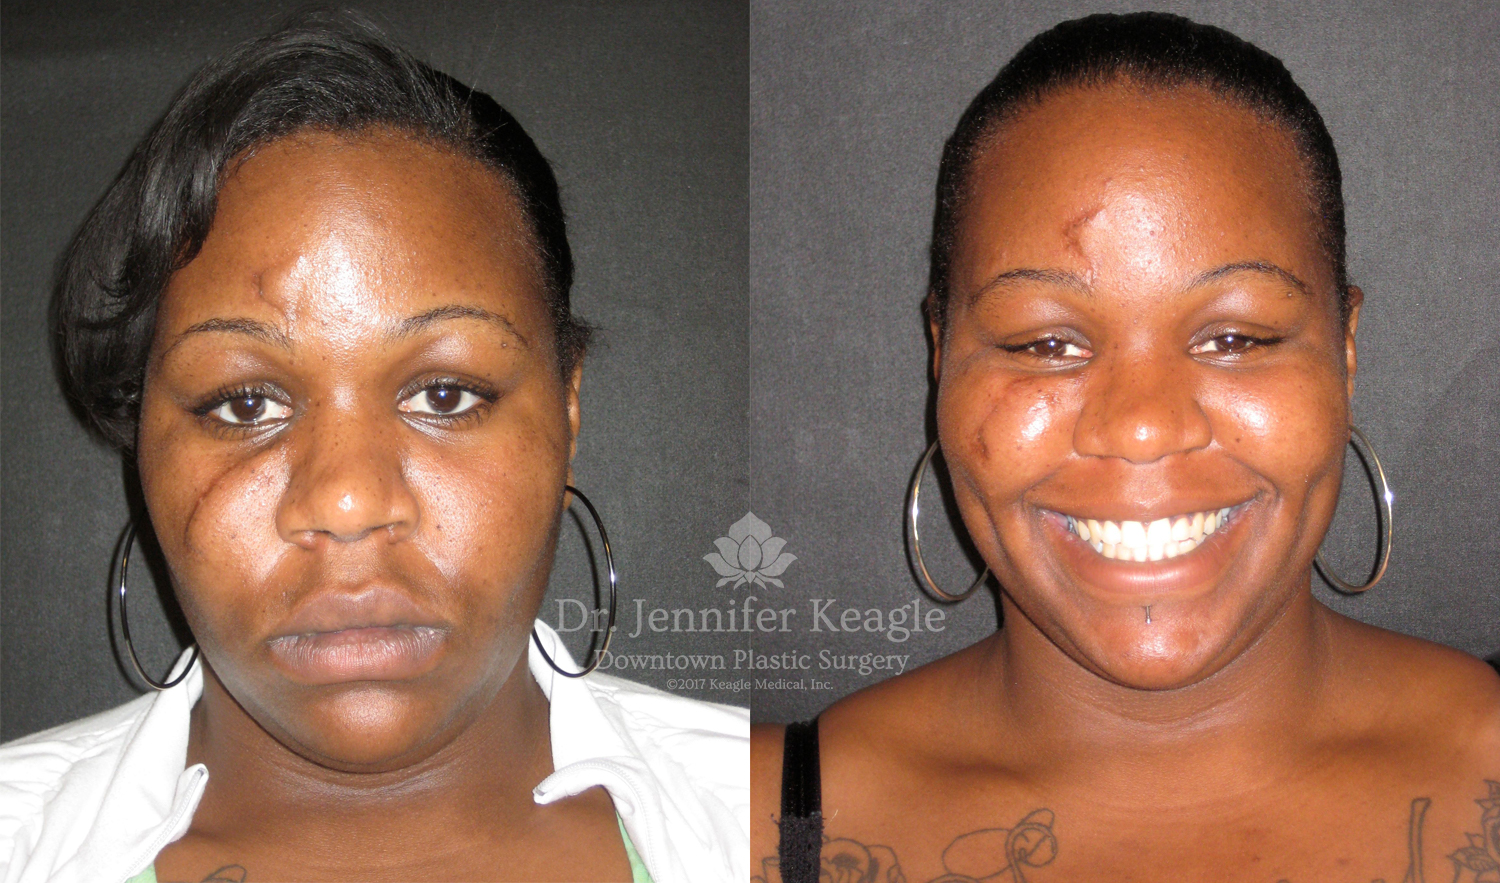 Scar revision before-after reconstructive plastic surgery by Dr. Jennifer Keagle